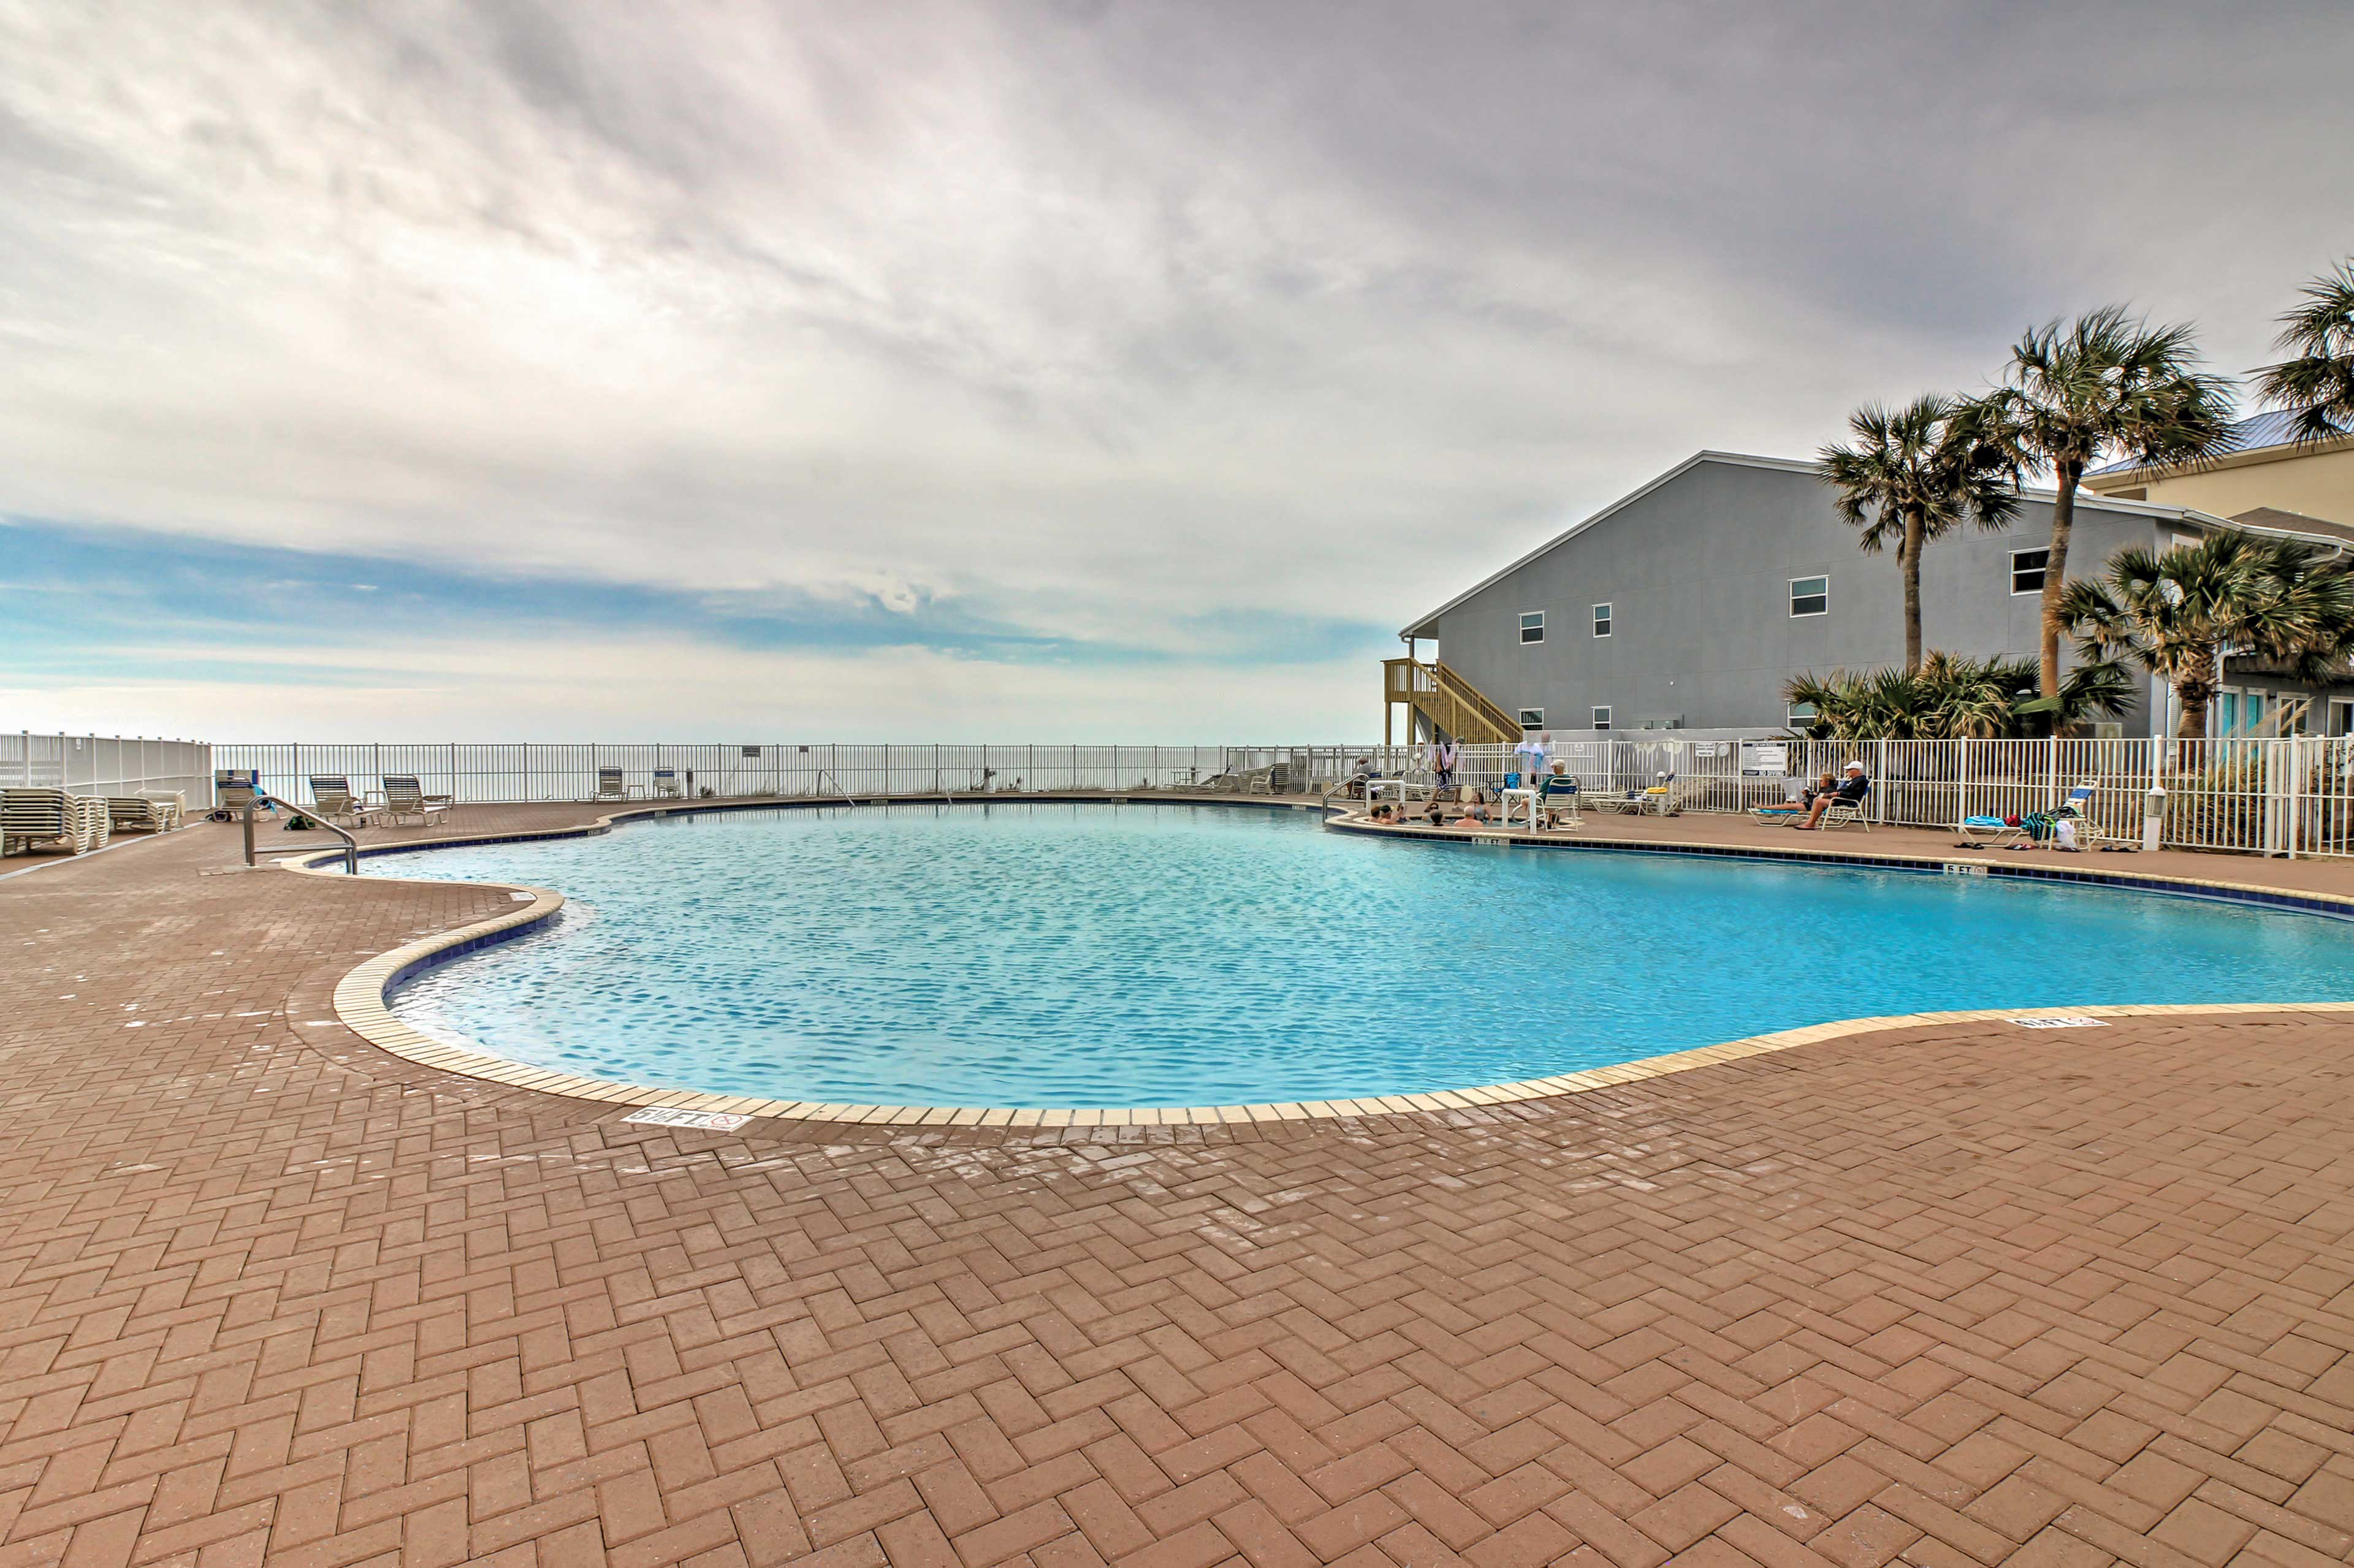 The condo is located in the Tidewater Beach Resort.